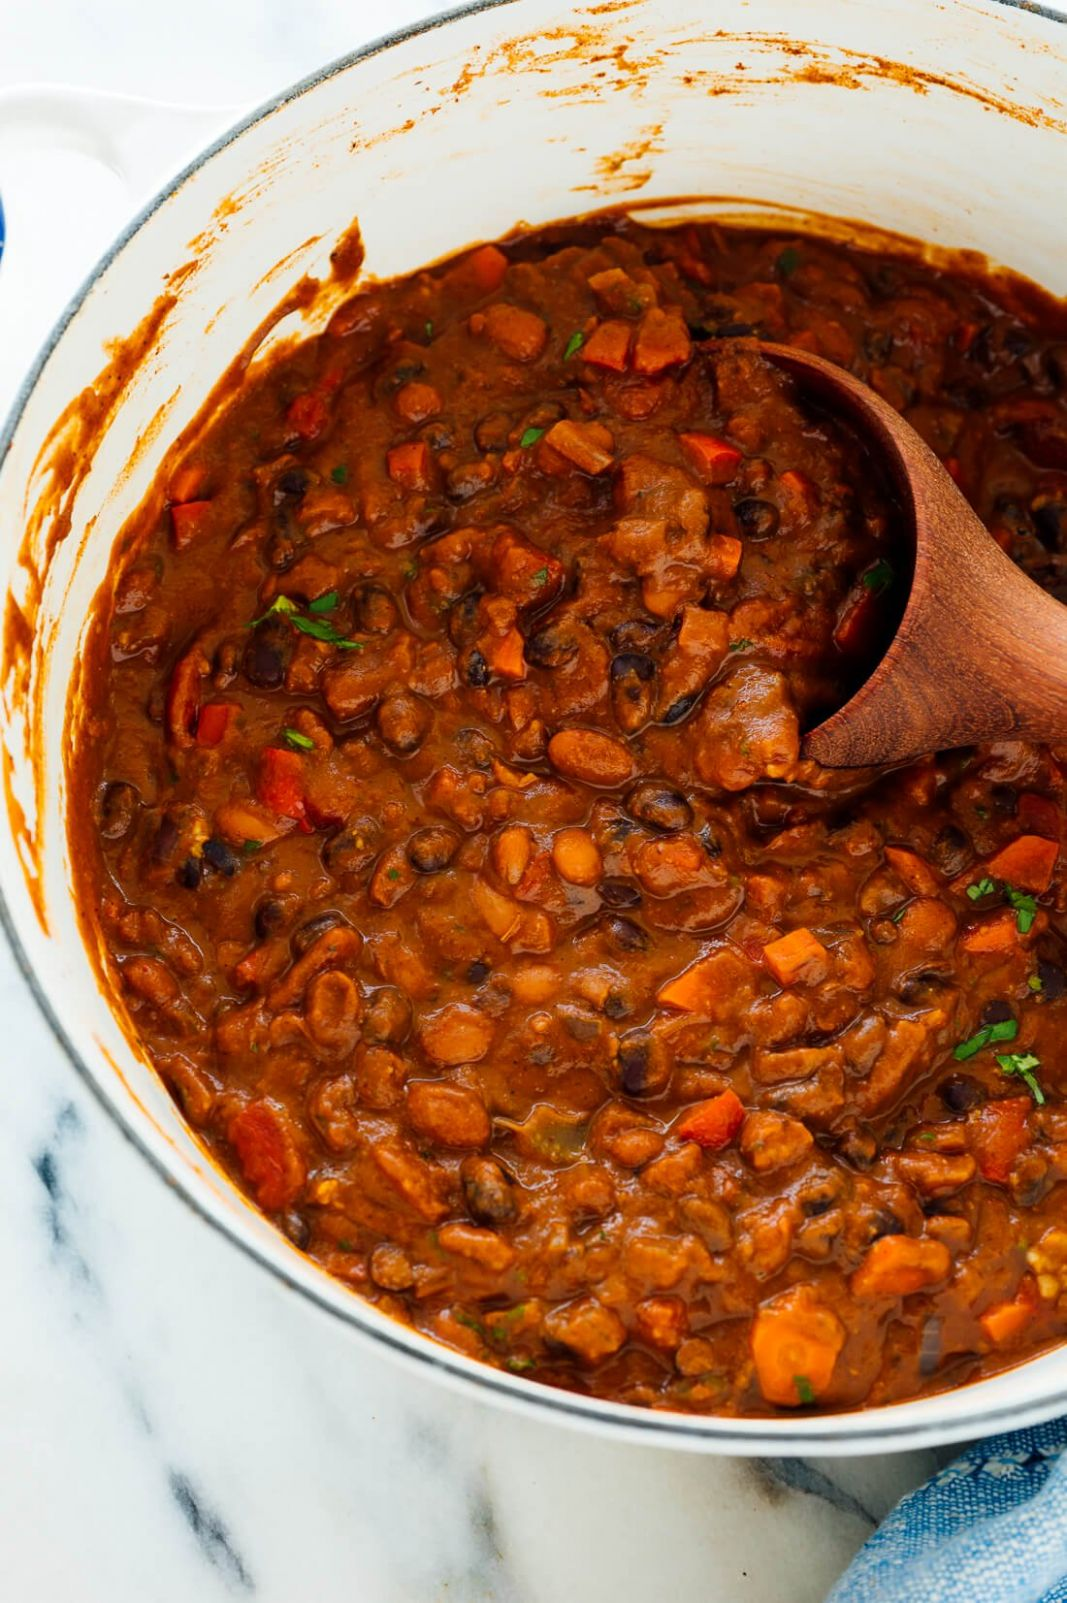 Homemade Vegetarian Chili - Cookie and Kate - Recipes Vegetable Chili